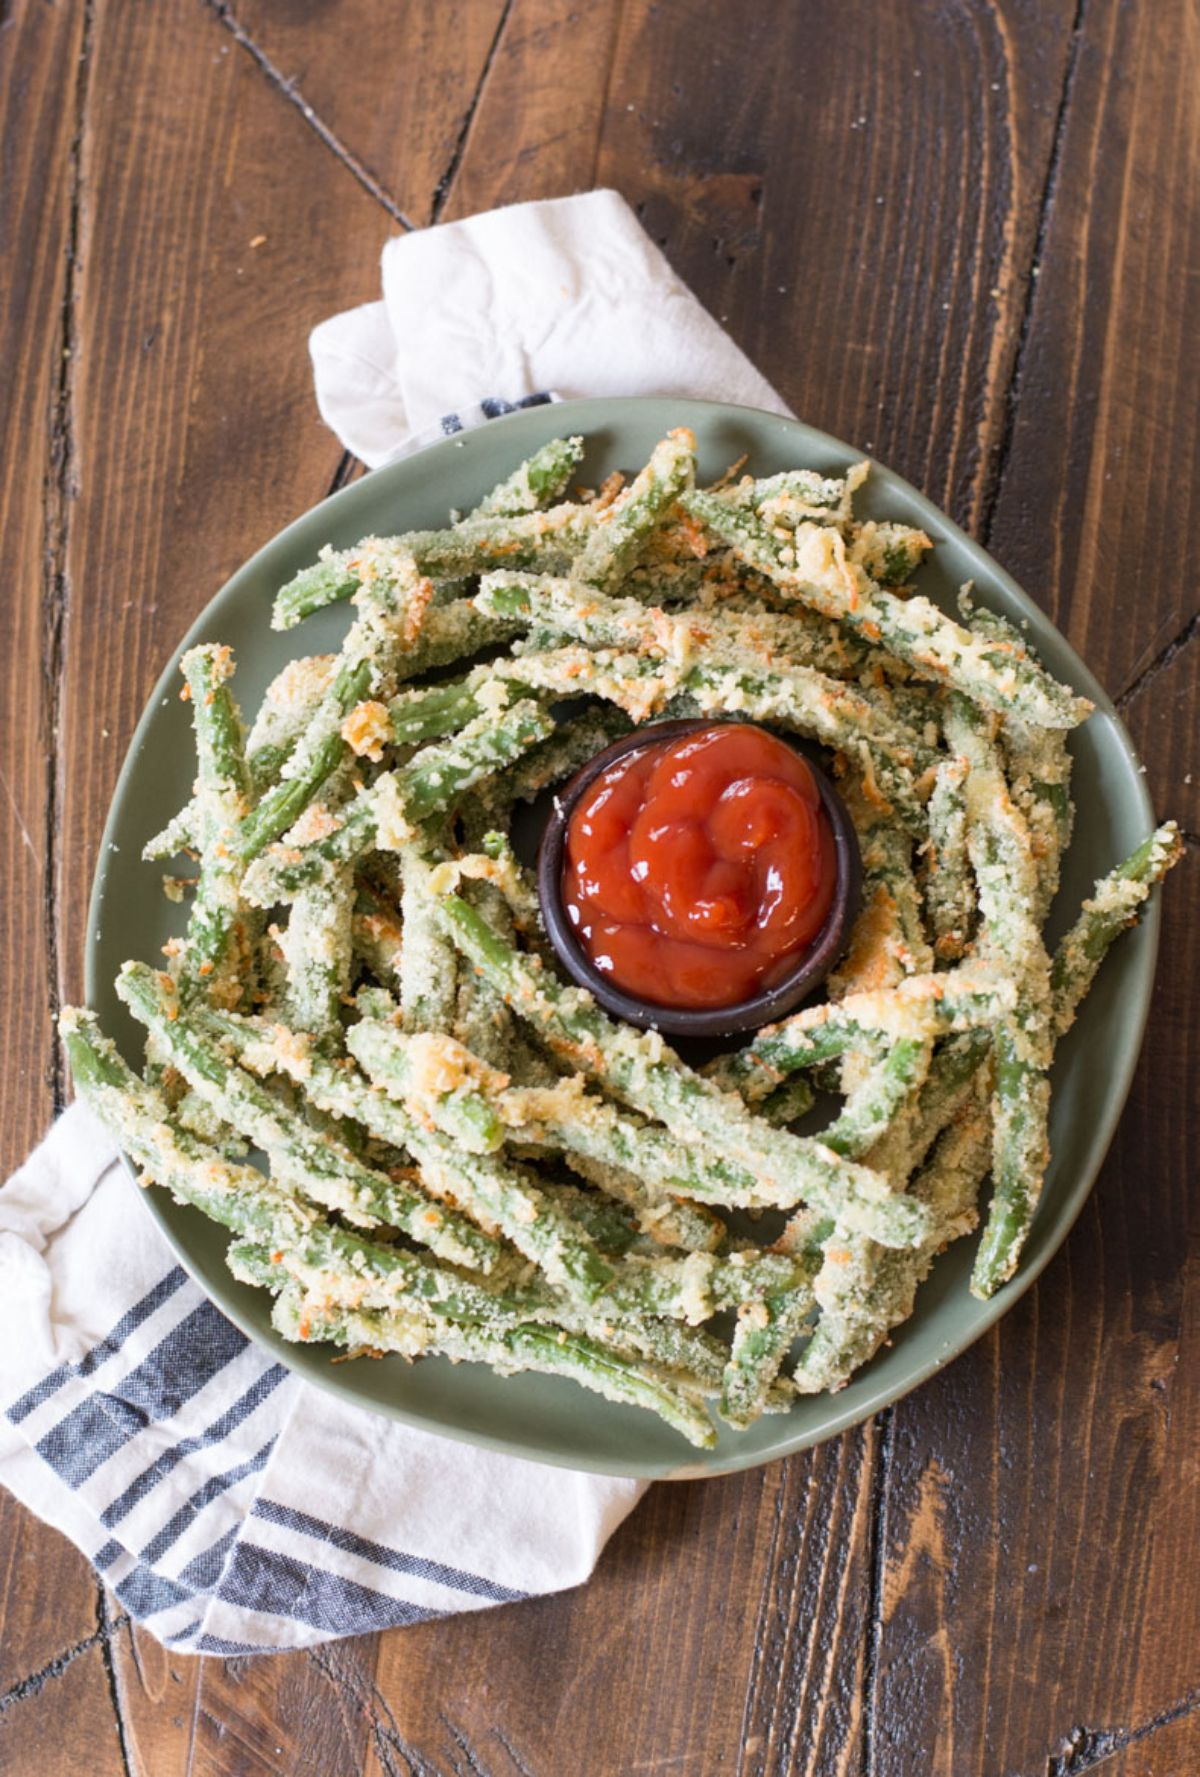 On a dark wooden table is a white and blue cloth with a green bowl on top. A pile of fried green beans surround a pot of red dip